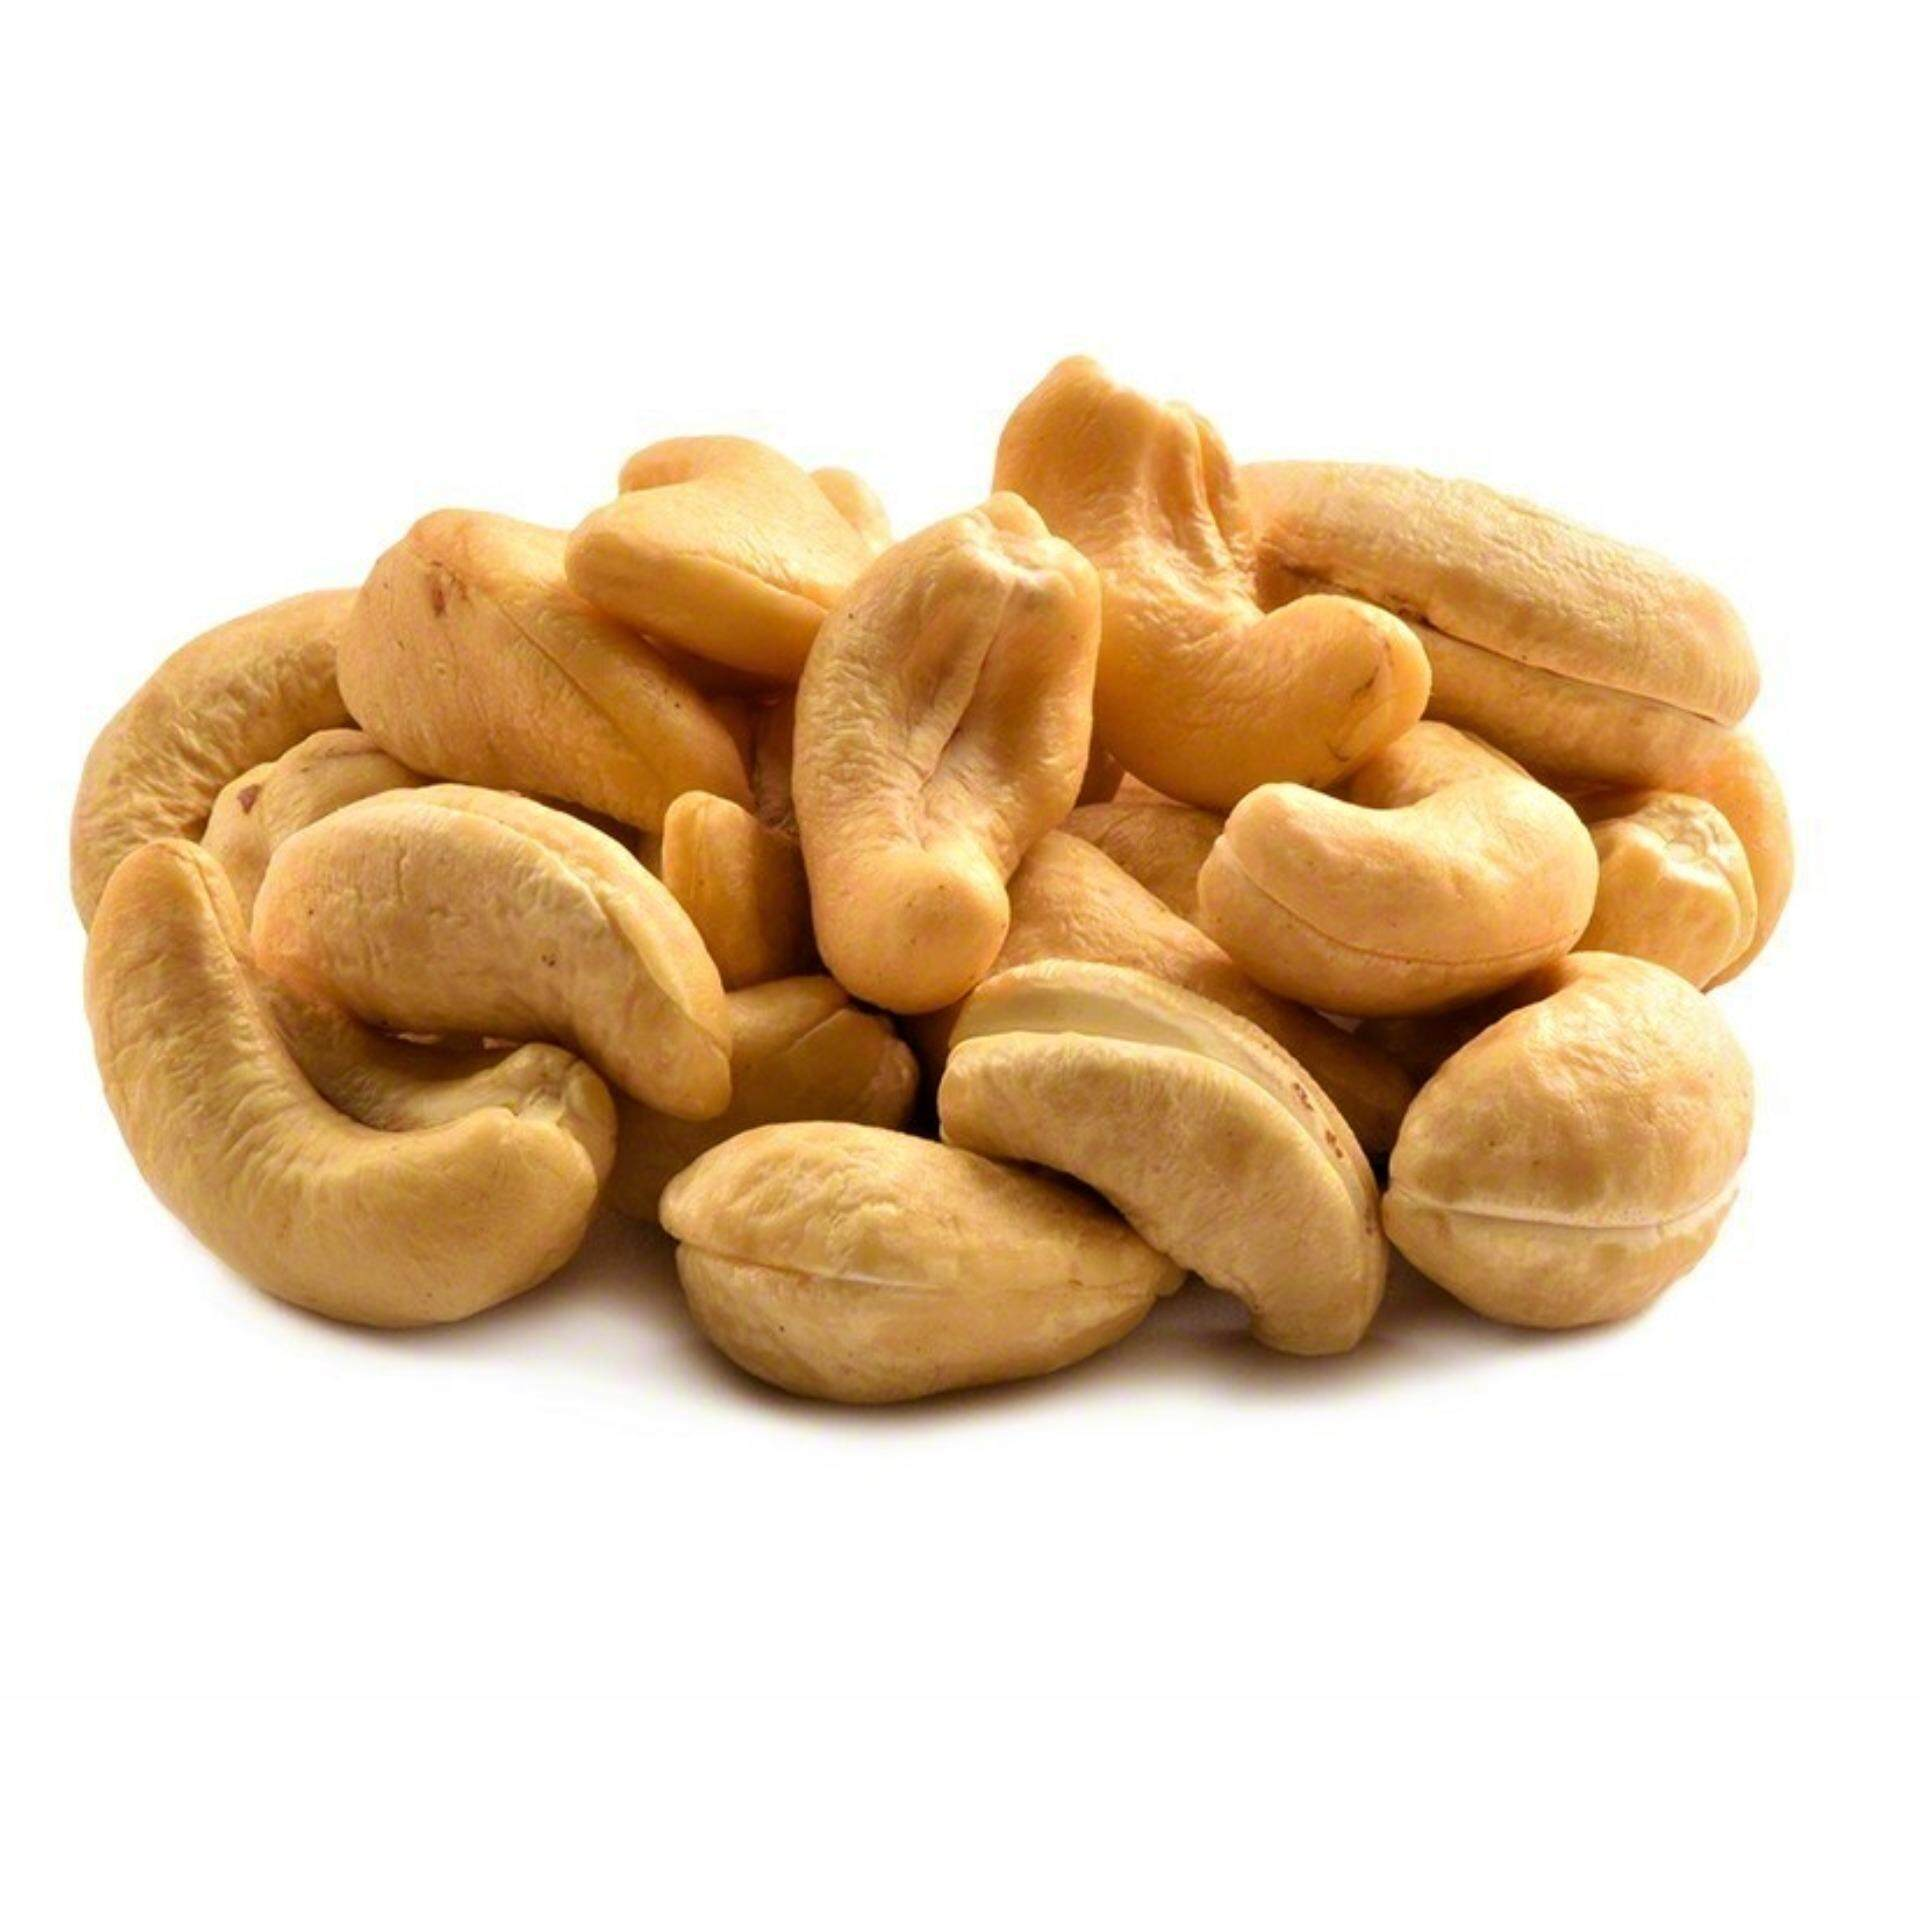 Kacang Gajus 1 2kg Buy Sell Online Dried Fruit Nuts Seeds With Cheap Price Lazada